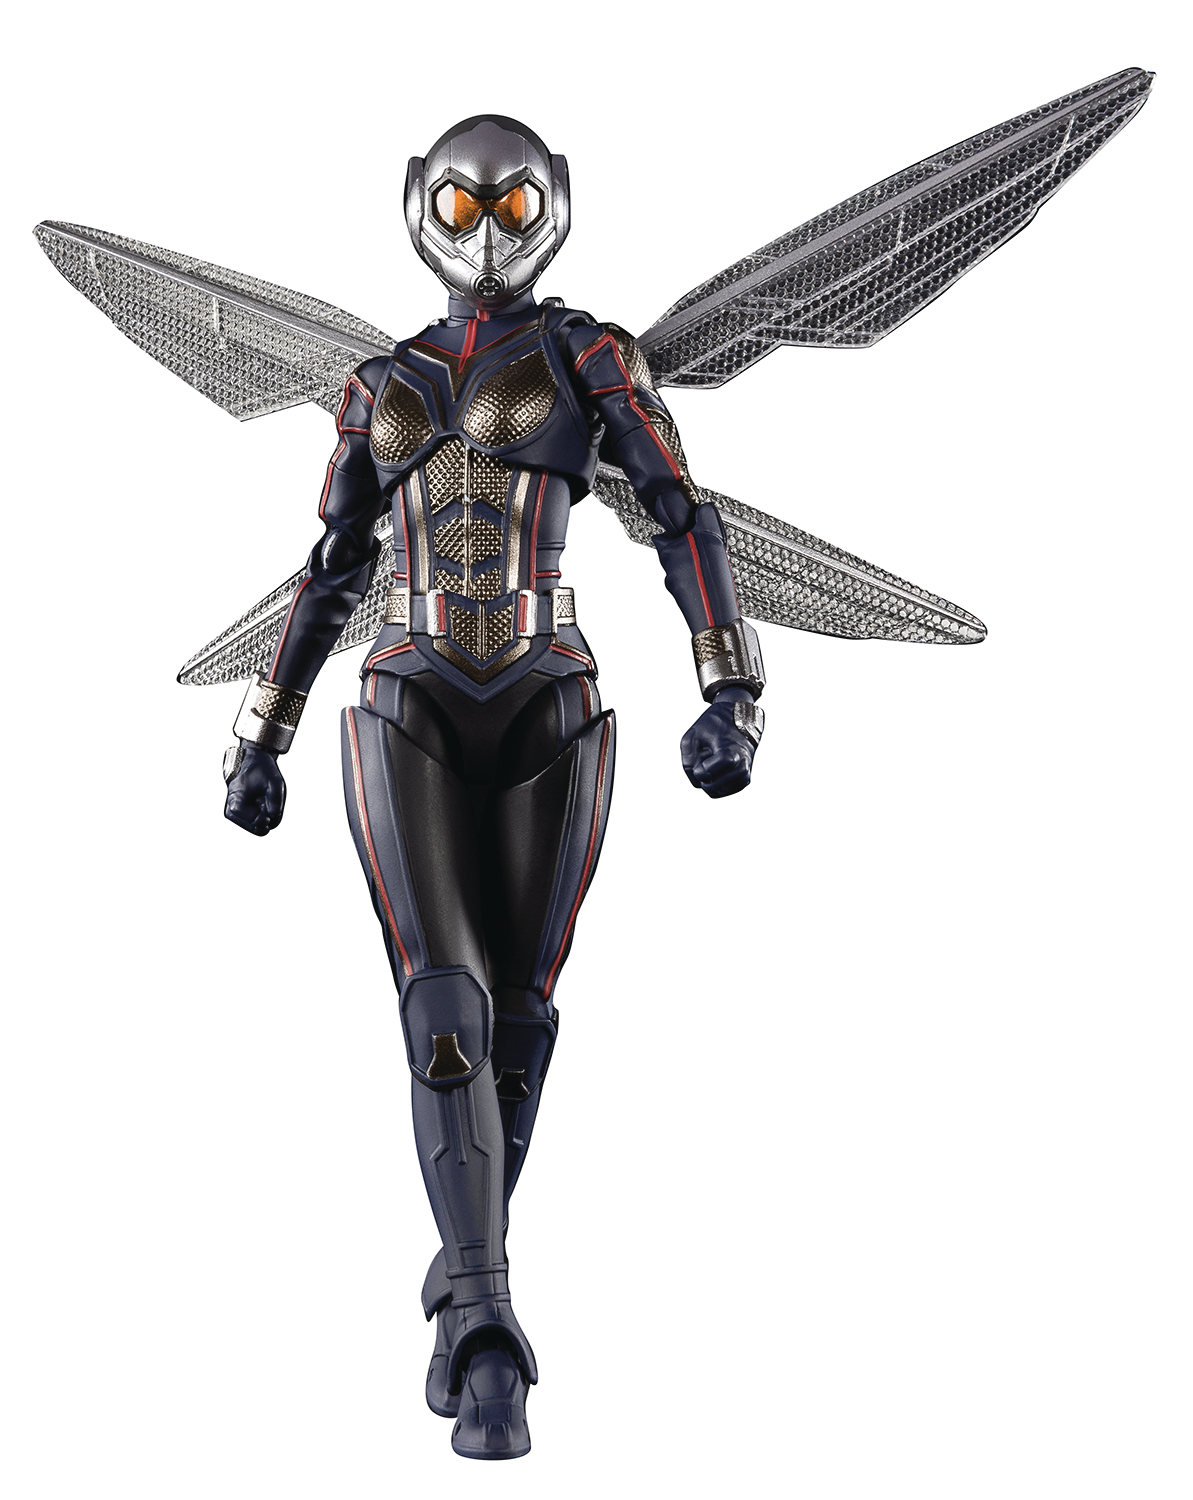 ANT-MAN AND THE WASP WASP S.H. FIGUARTS AF W/TAMASHII STAGE